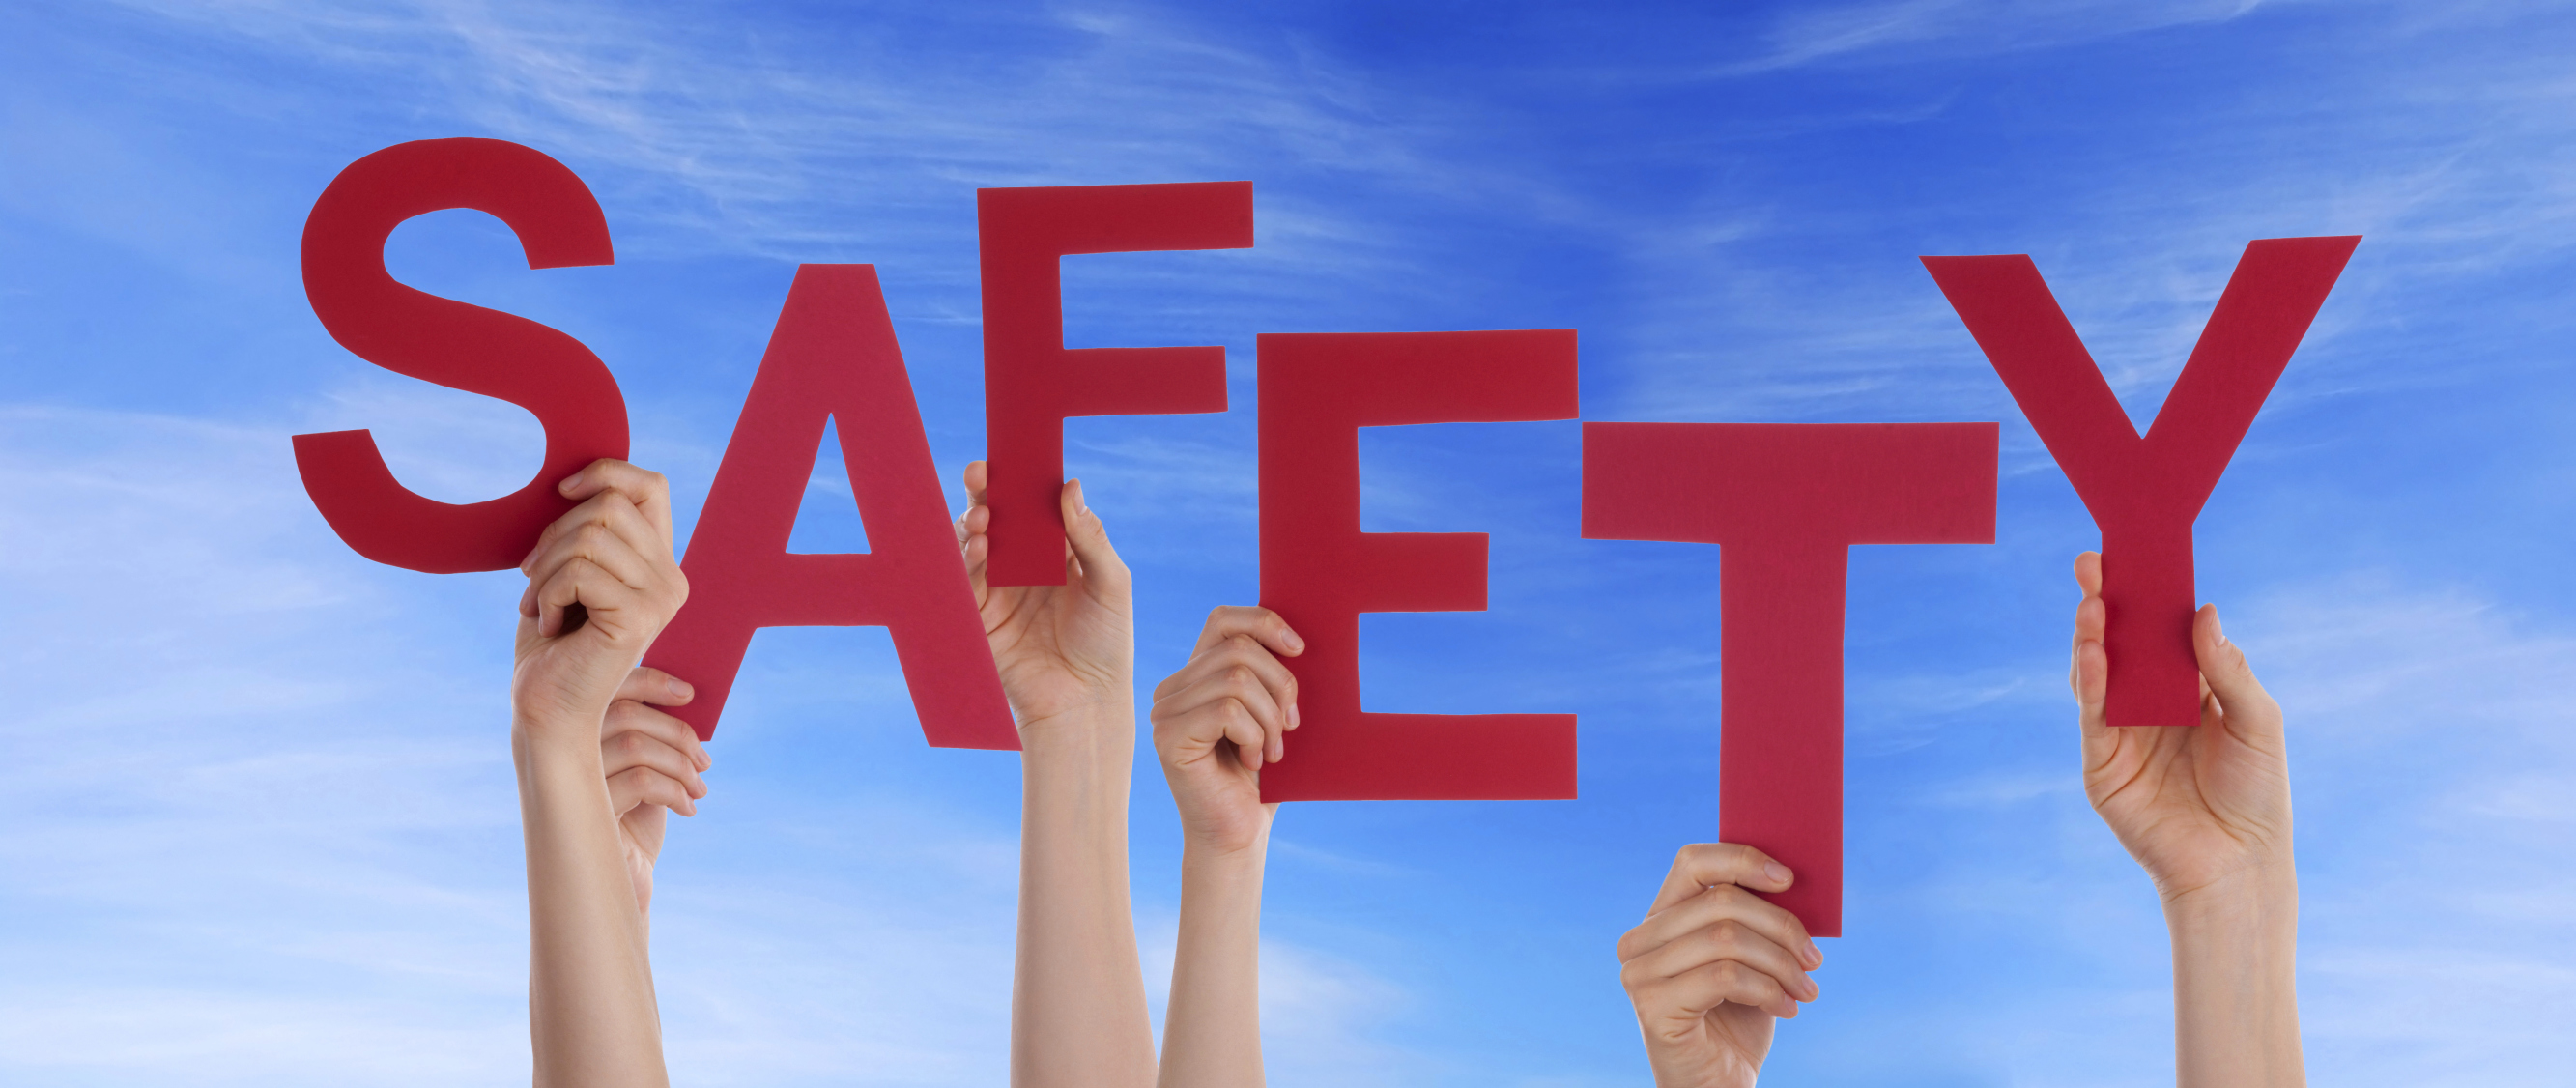 Free Safety Word Cliparts Download Free Clip Art Free